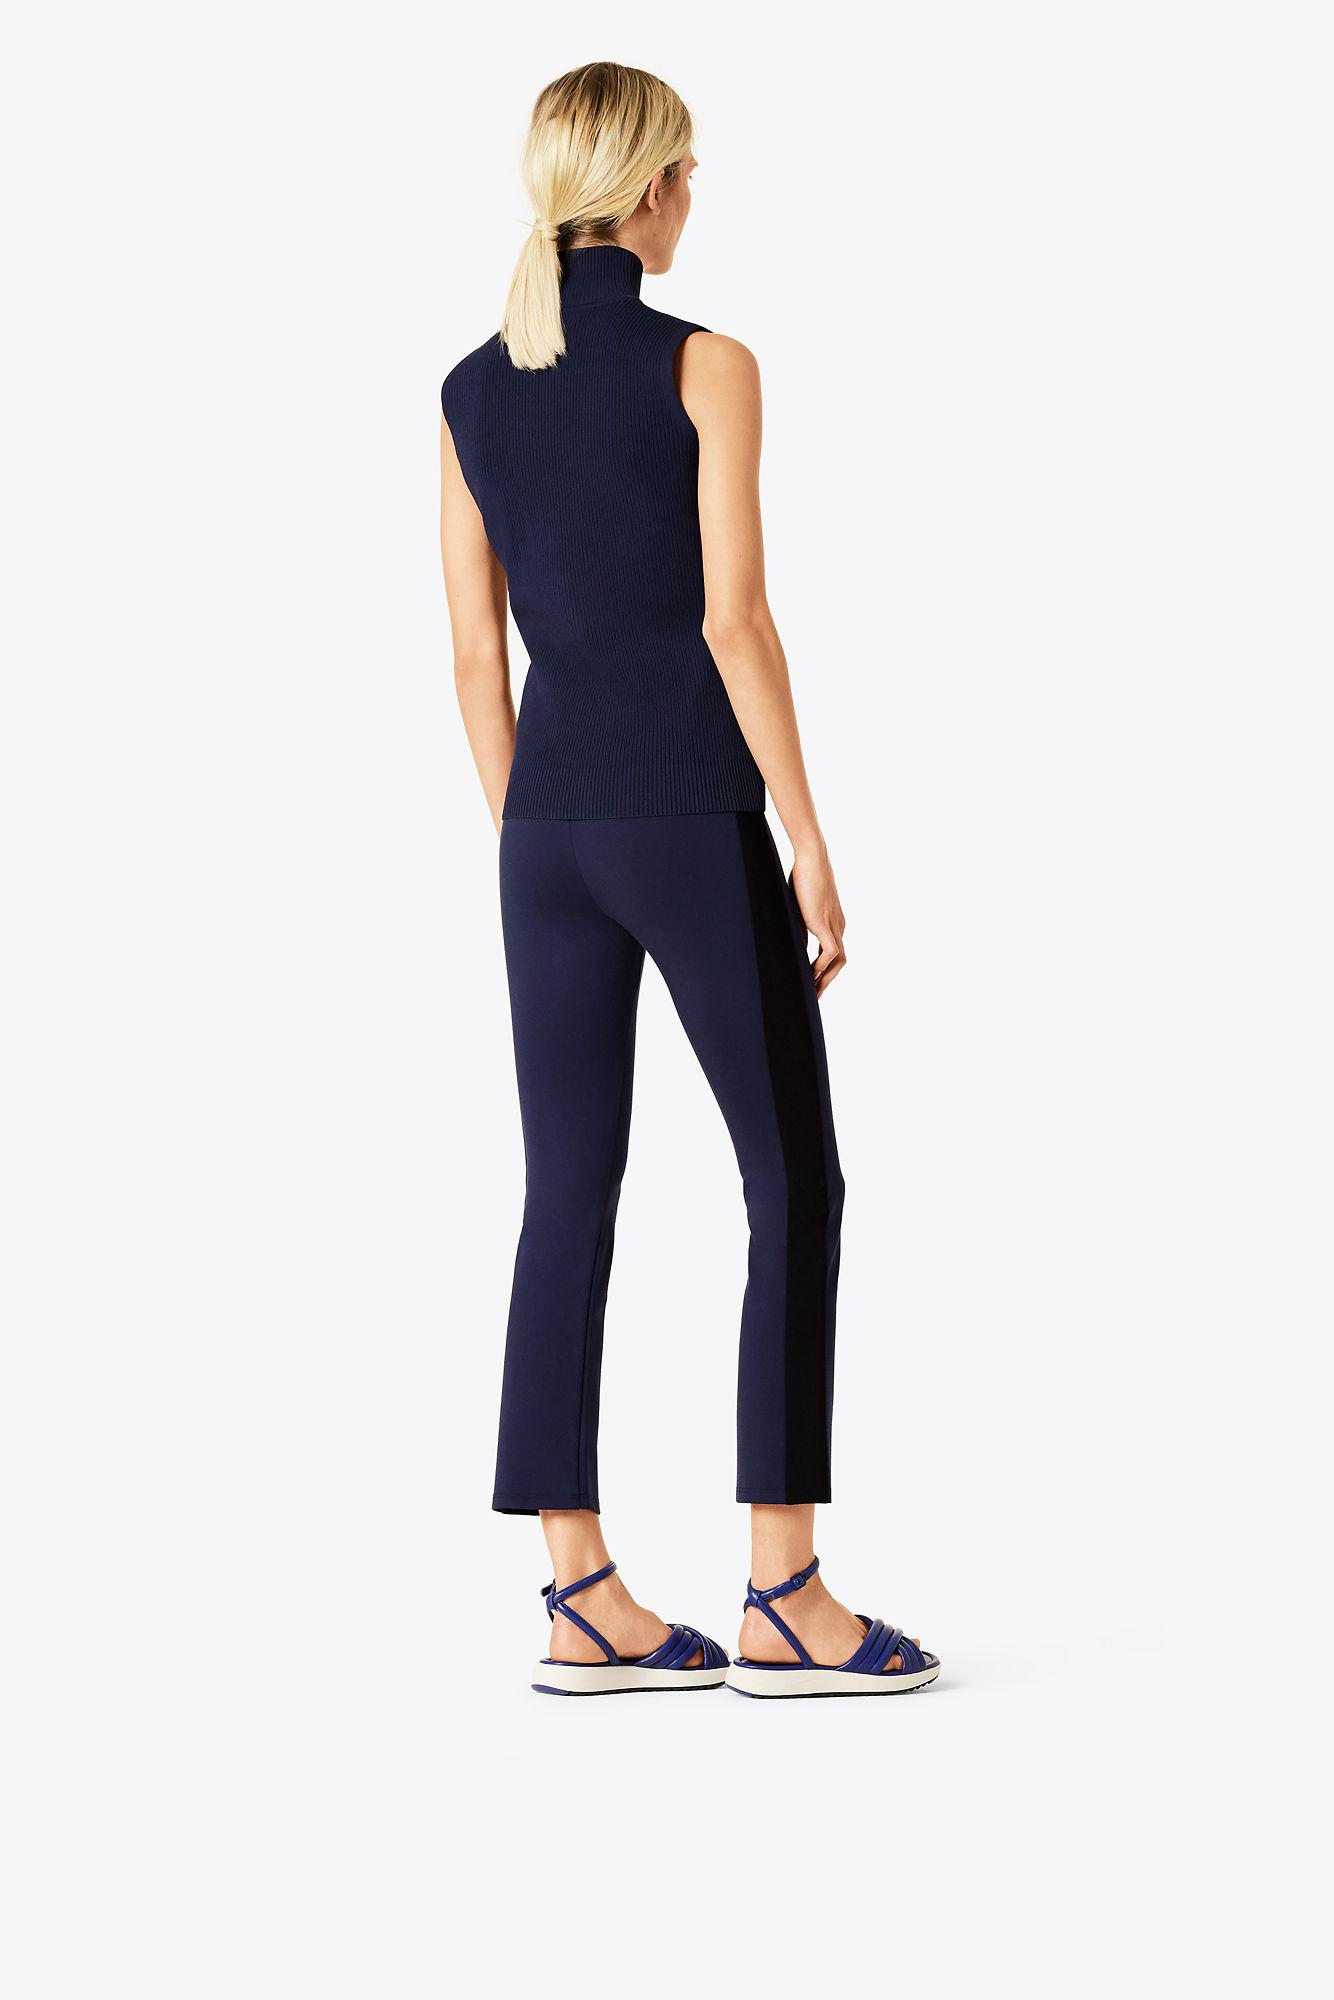 f98d934d7447 Lyst - Tory Sport Tory Burch Side-striped Tech Ponte Cropped Flare ...